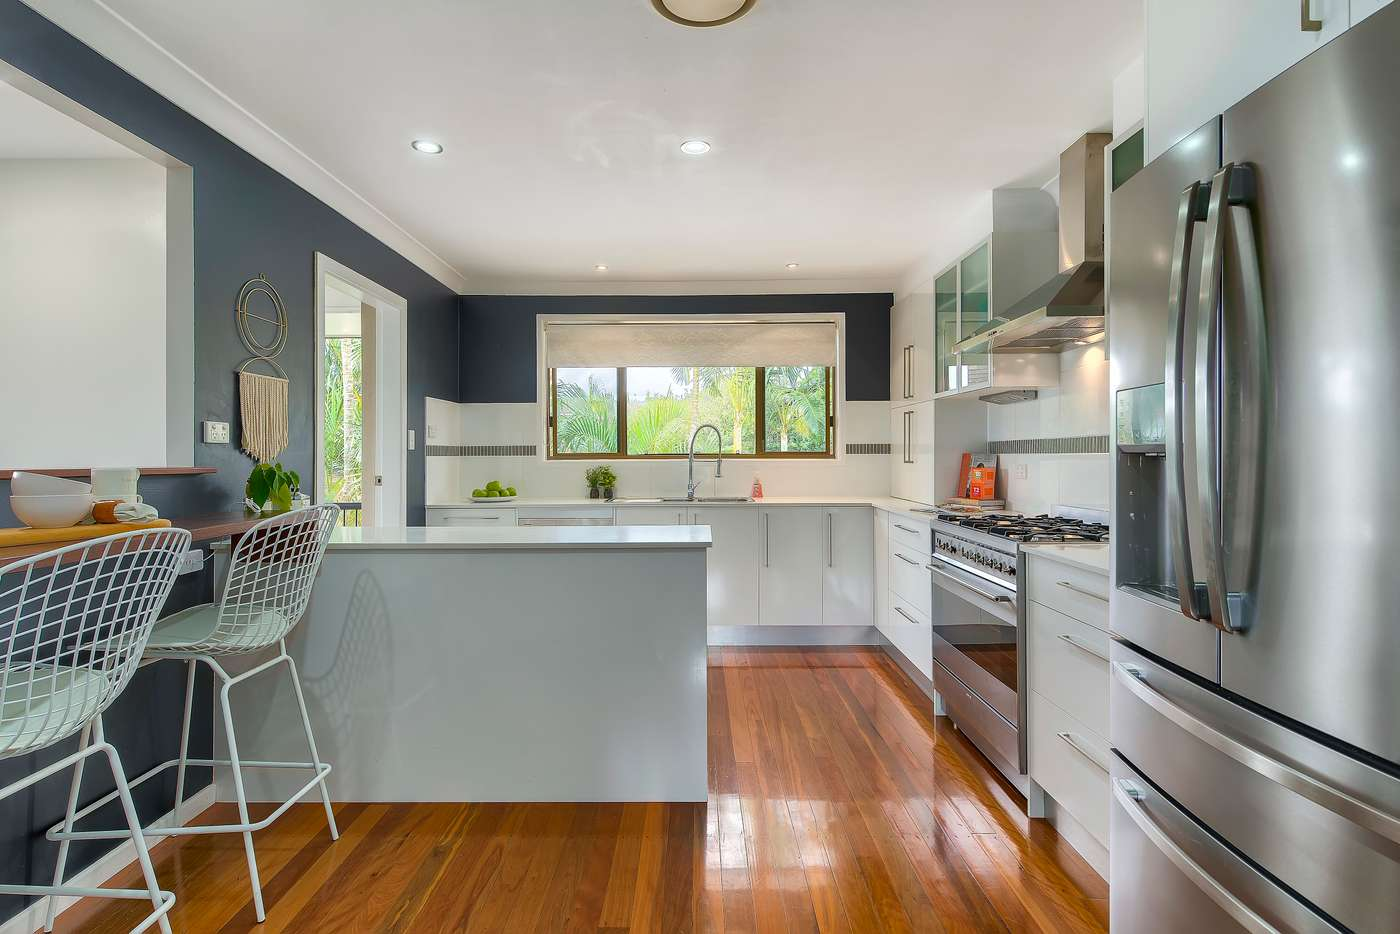 Fifth view of Homely house listing, 15 Maestra Street, The Gap QLD 4061